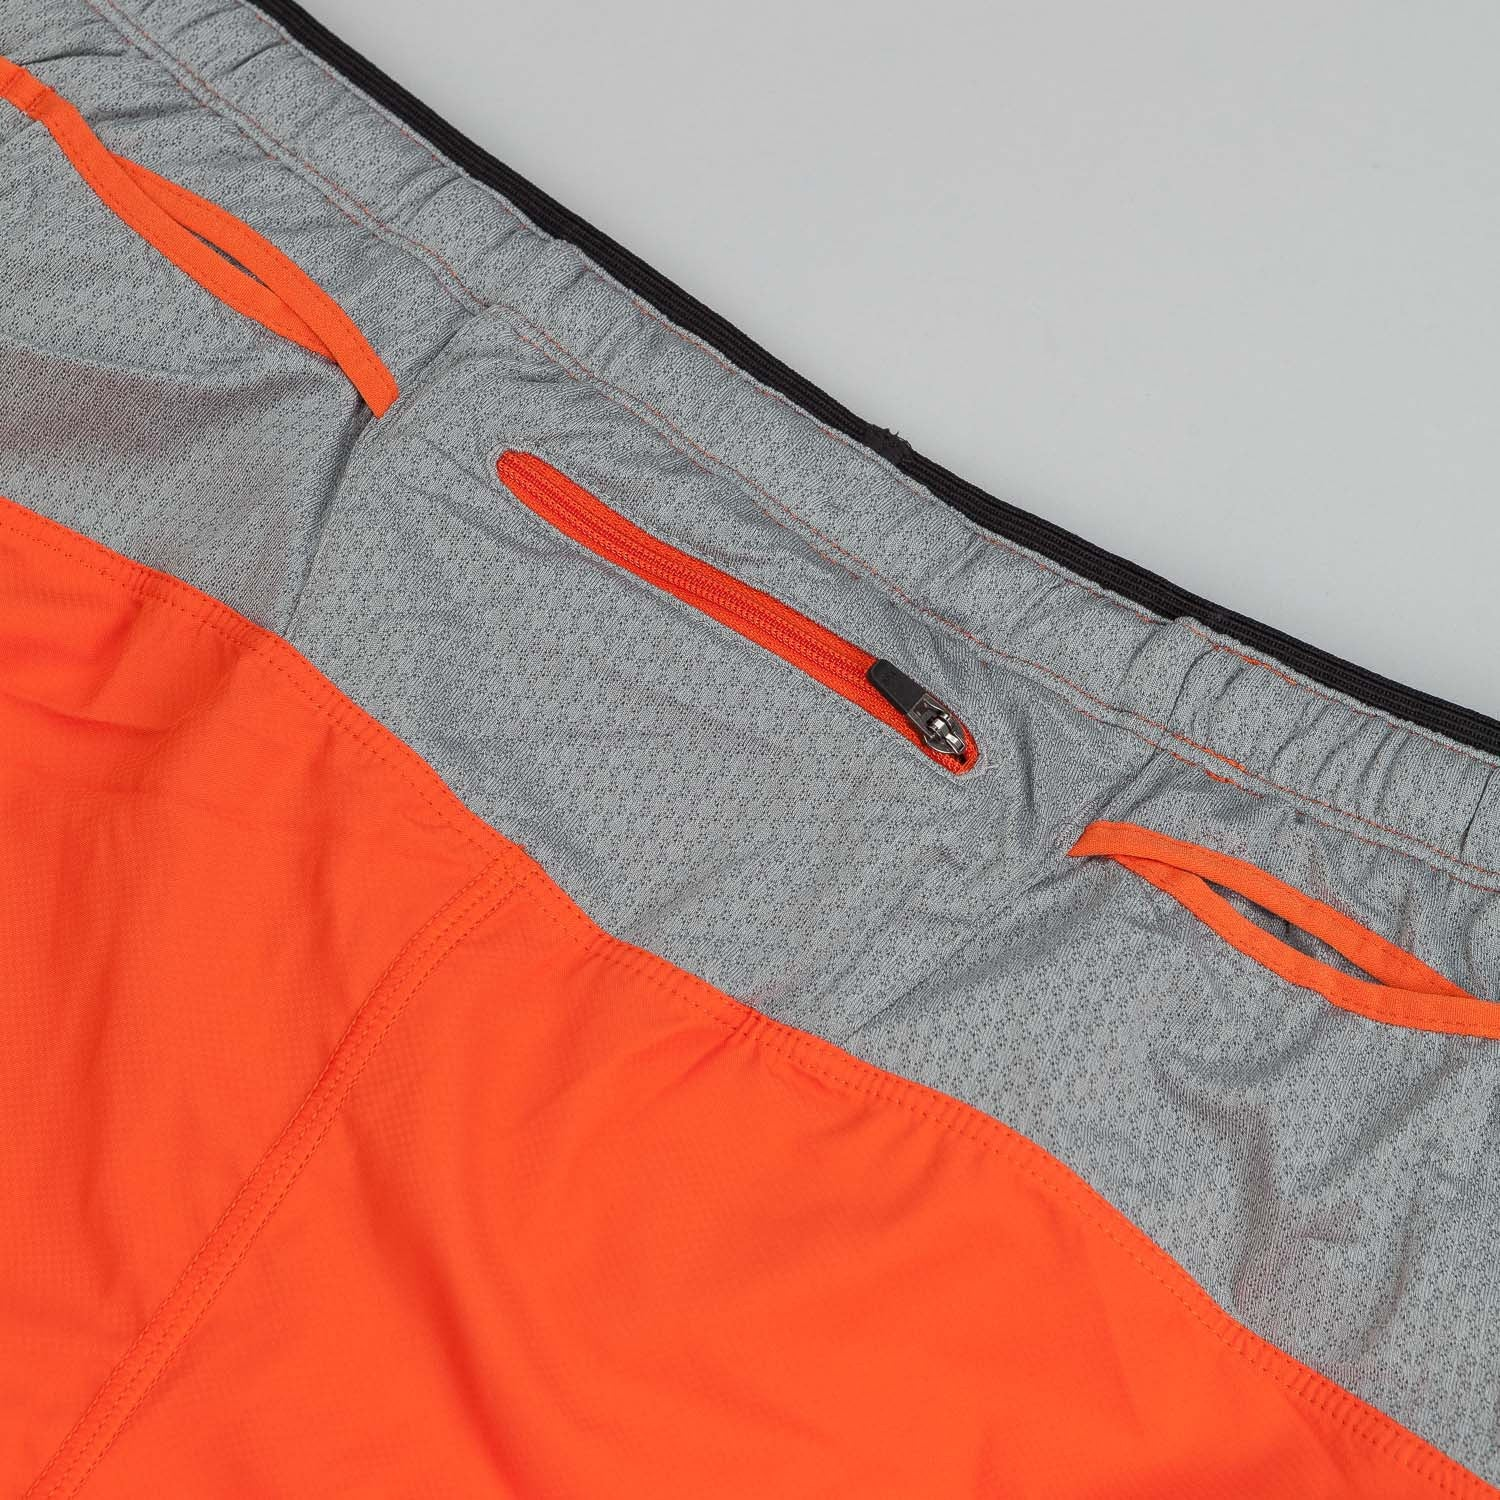 "Patagonia Strider Pro Shorts 5"" - Monarch Orange"